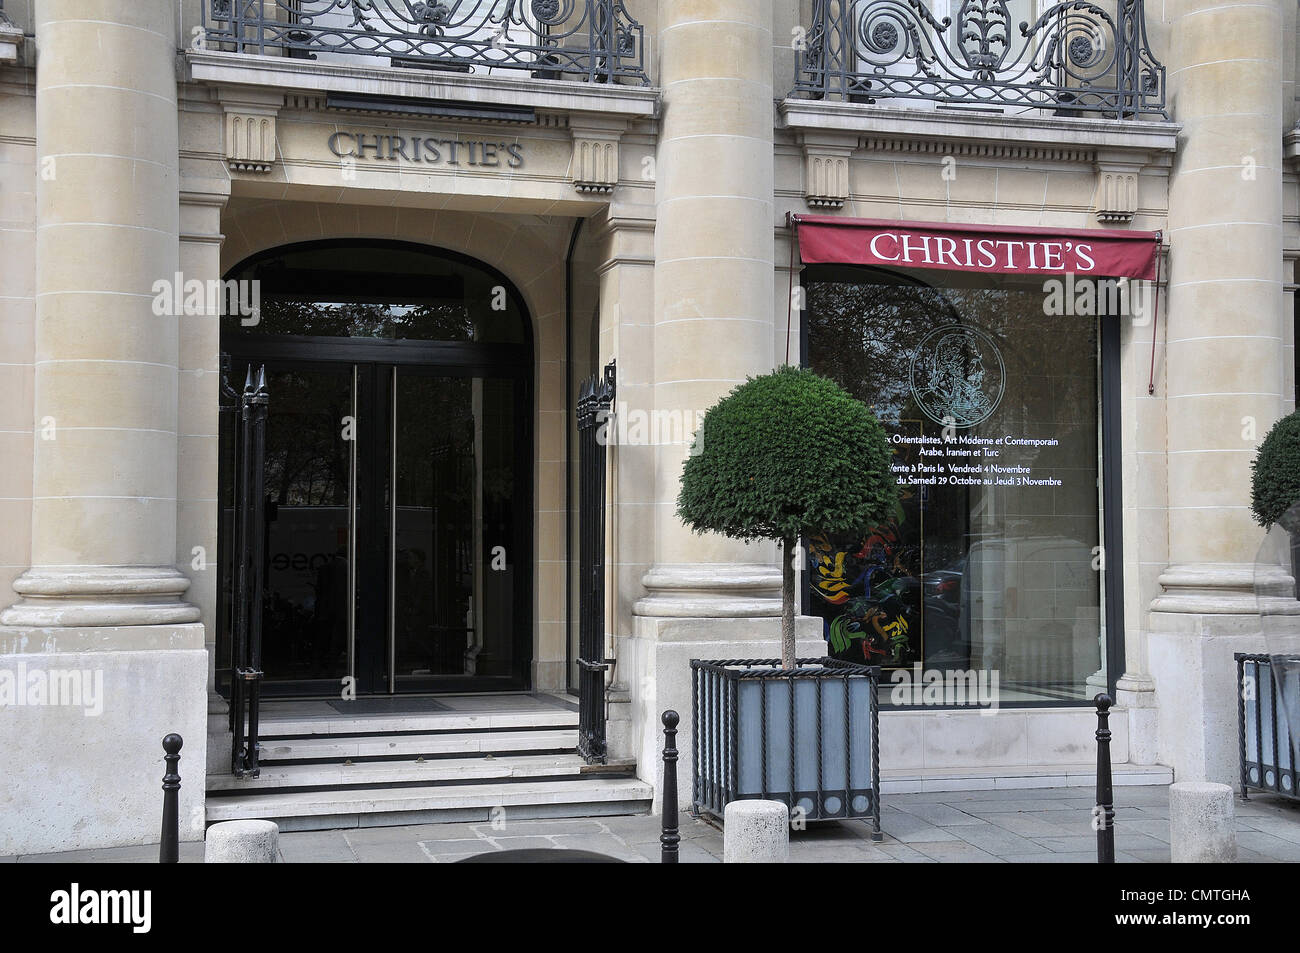 Christies Gallery Paris France - Stock Image